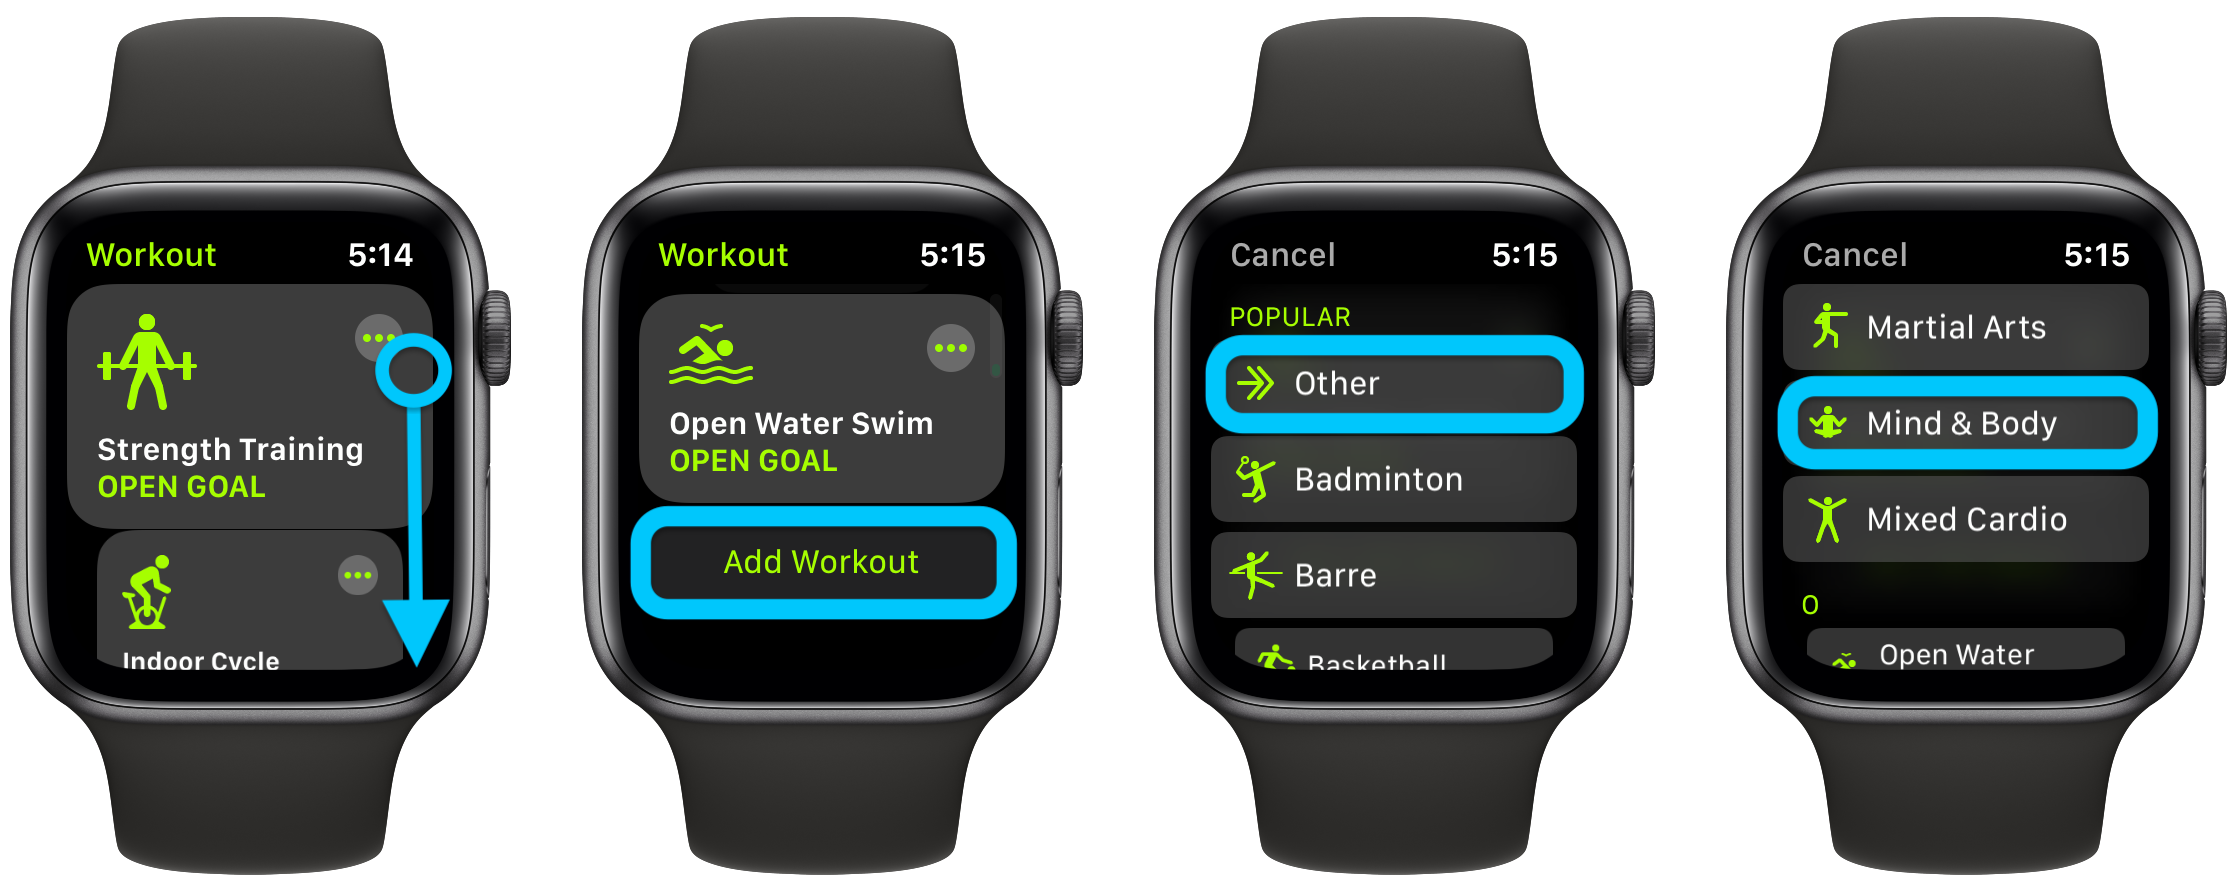 How to change Apple Watch Move goal Exercise goal